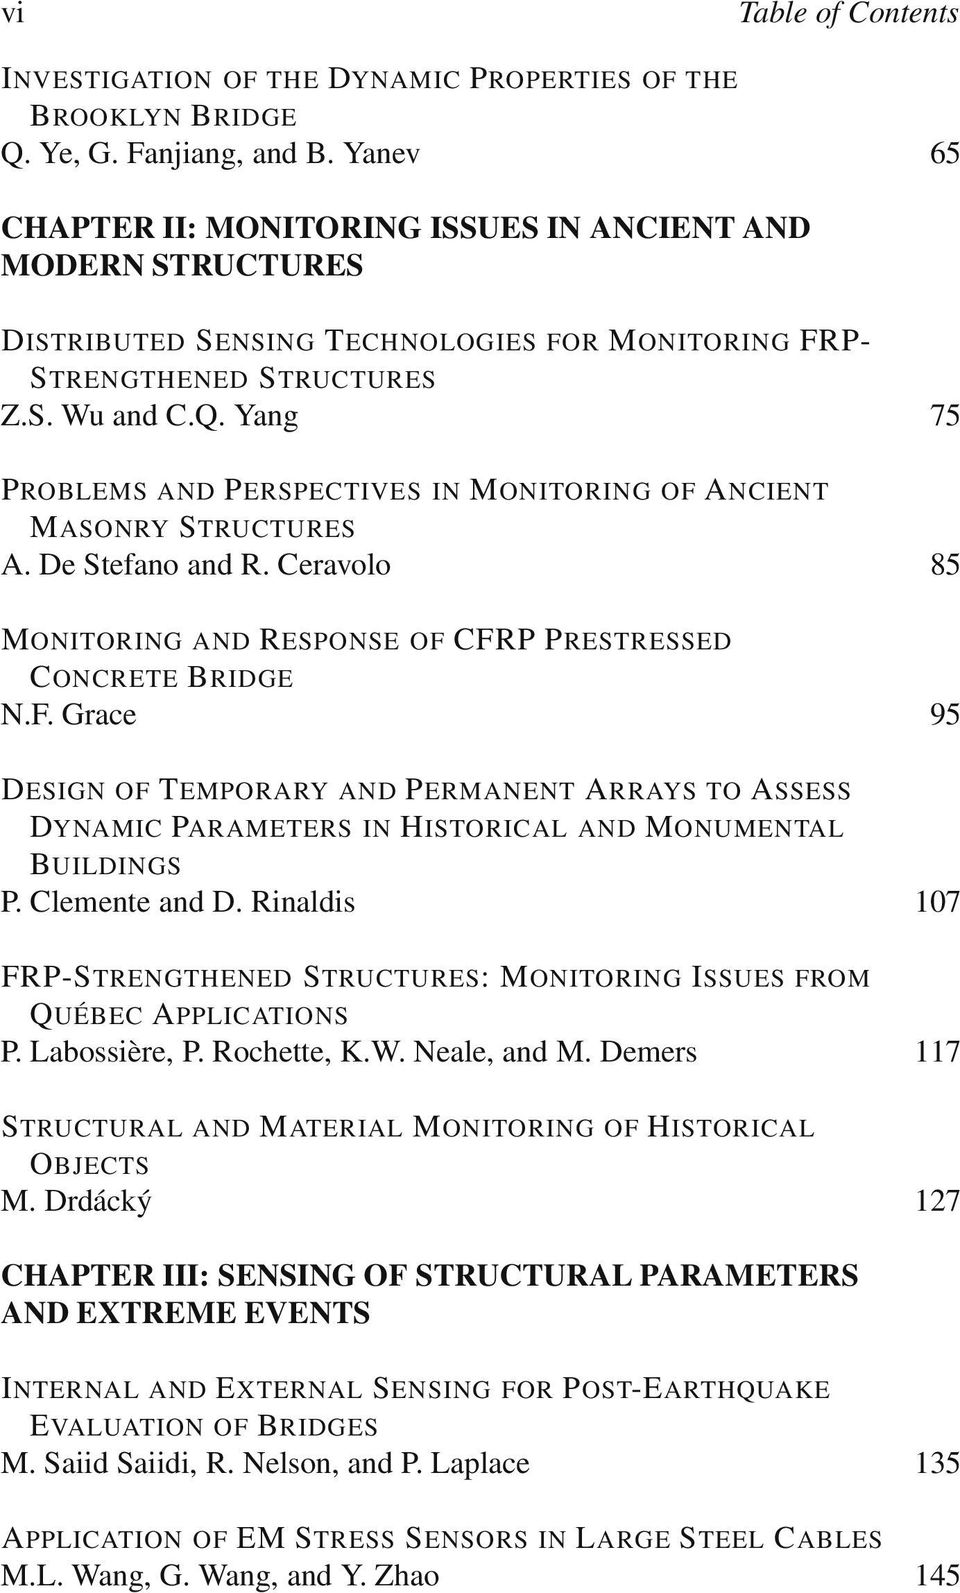 Yang 75 PROBLEMS AND PERSPECTIVES IN MONITORING OF ANCIENT MASONRY STRUCTURES A. De Stefano and R. Ceravolo 85 MONITORING AND RESPONSE OF CFRP PRESTRESSED CONCRETE BRIDGE N.F. Grace 95 DESIGN OF TEMPORARY AND PERMANENT ARRAYS TO ASSESS P DYNAMIC PARAMETERS IN HISTORICAL AND MONUMENTAL BUILDINGS P.